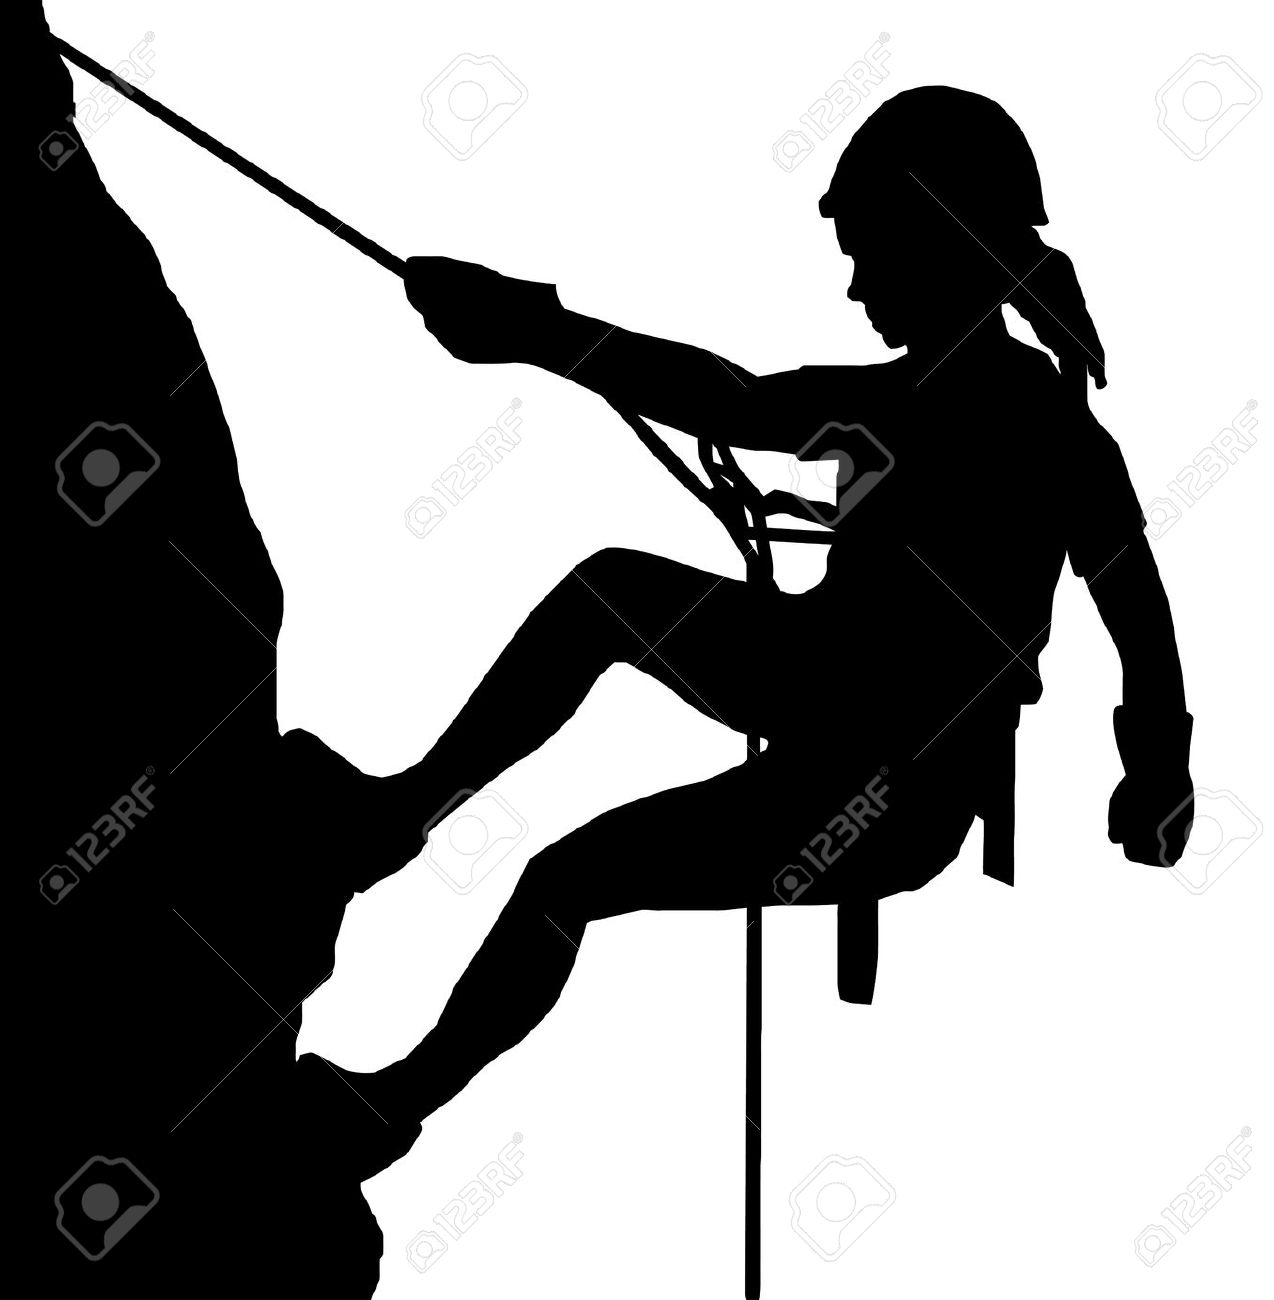 Climber clipart - Clipground